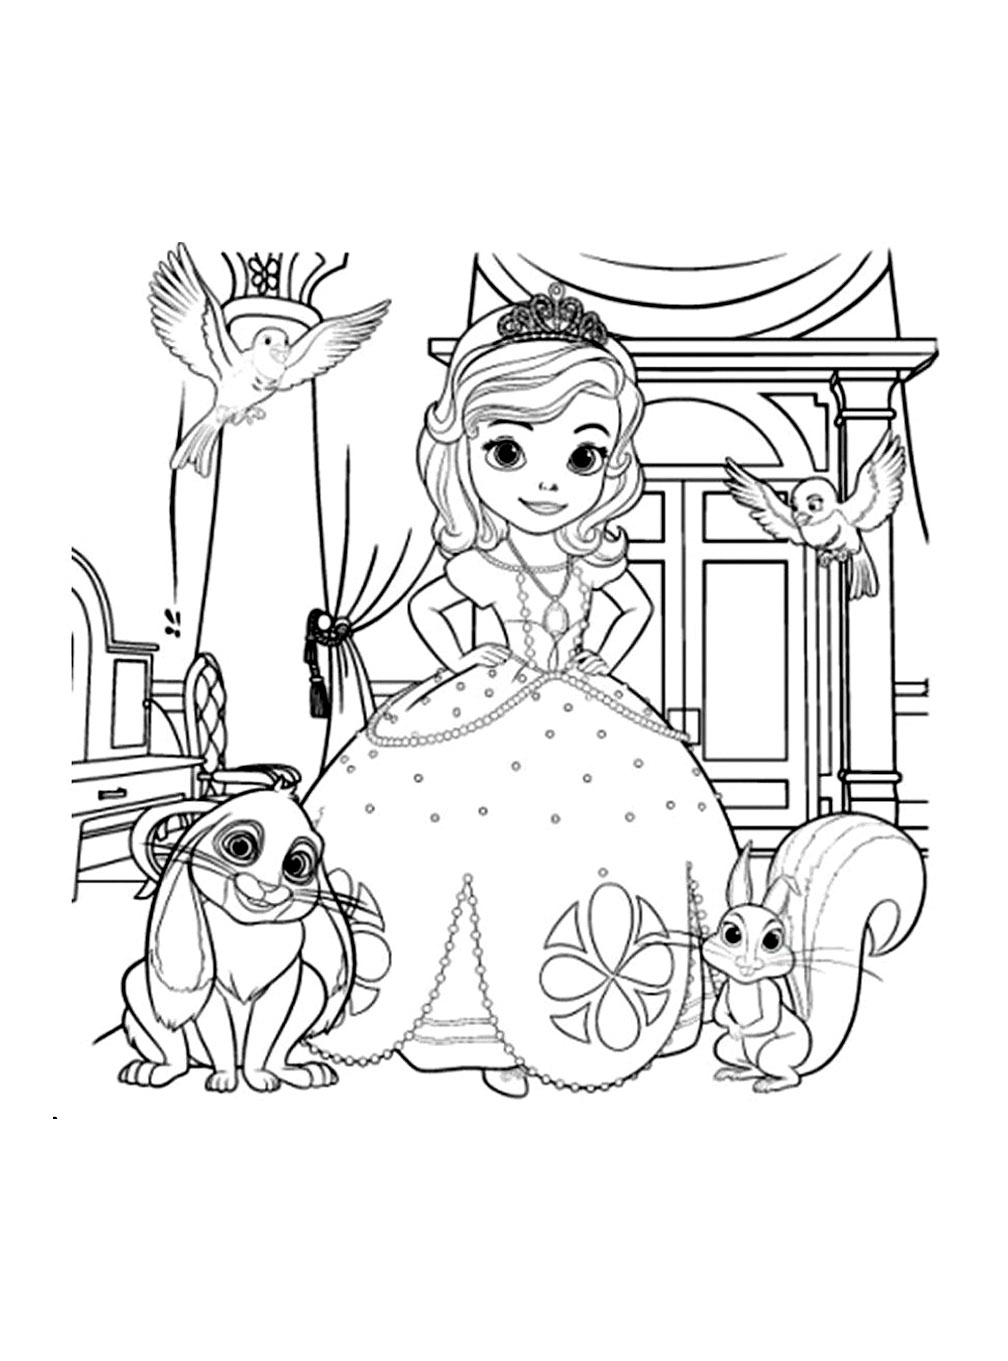 Princes sofia free to color for kids - Sofia the First Kids Coloring ...